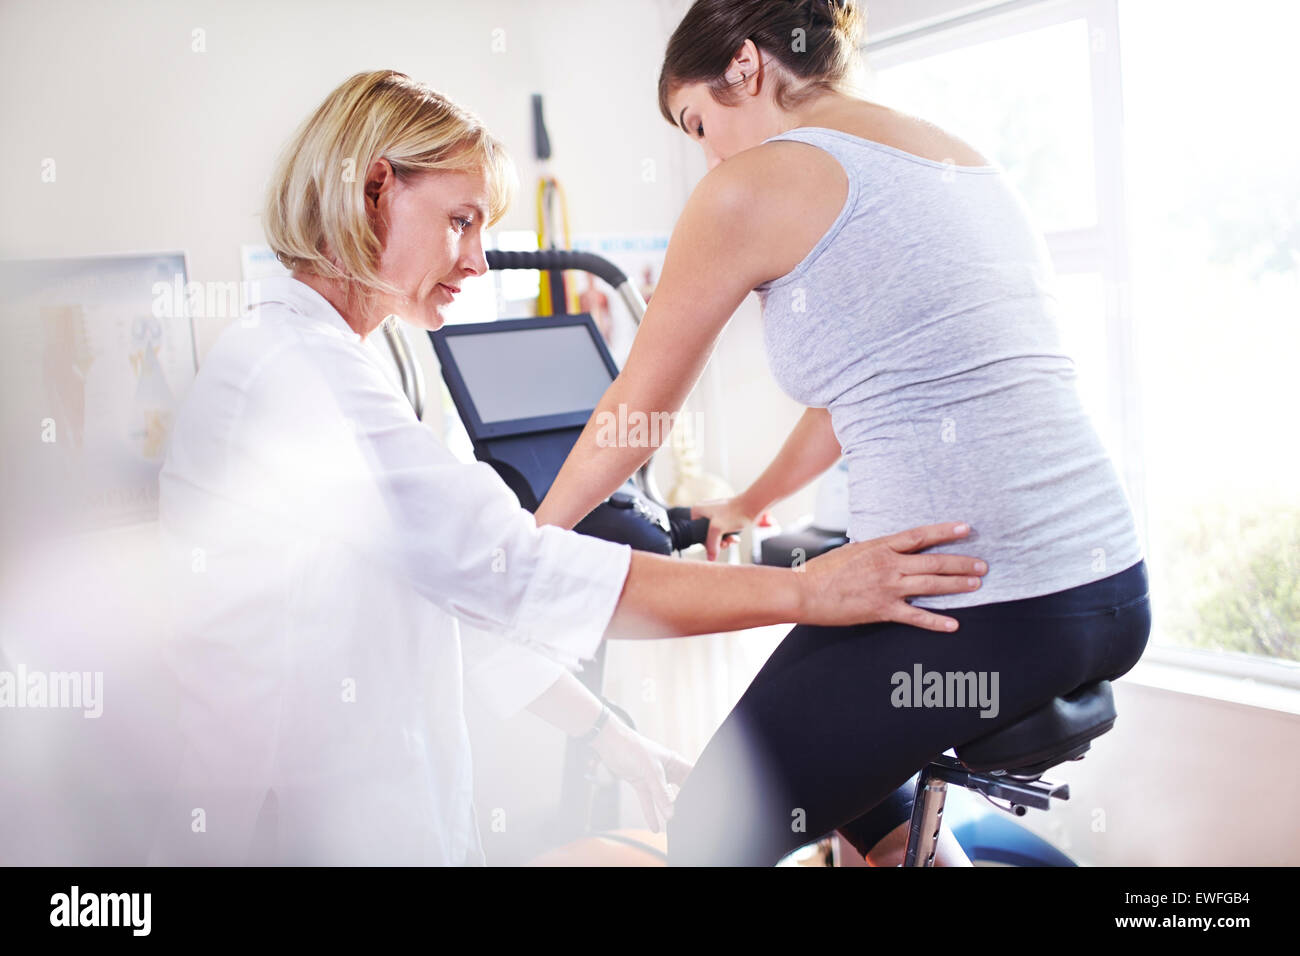 Physical therapist guiding woman's hips on stationary bike - Stock Image